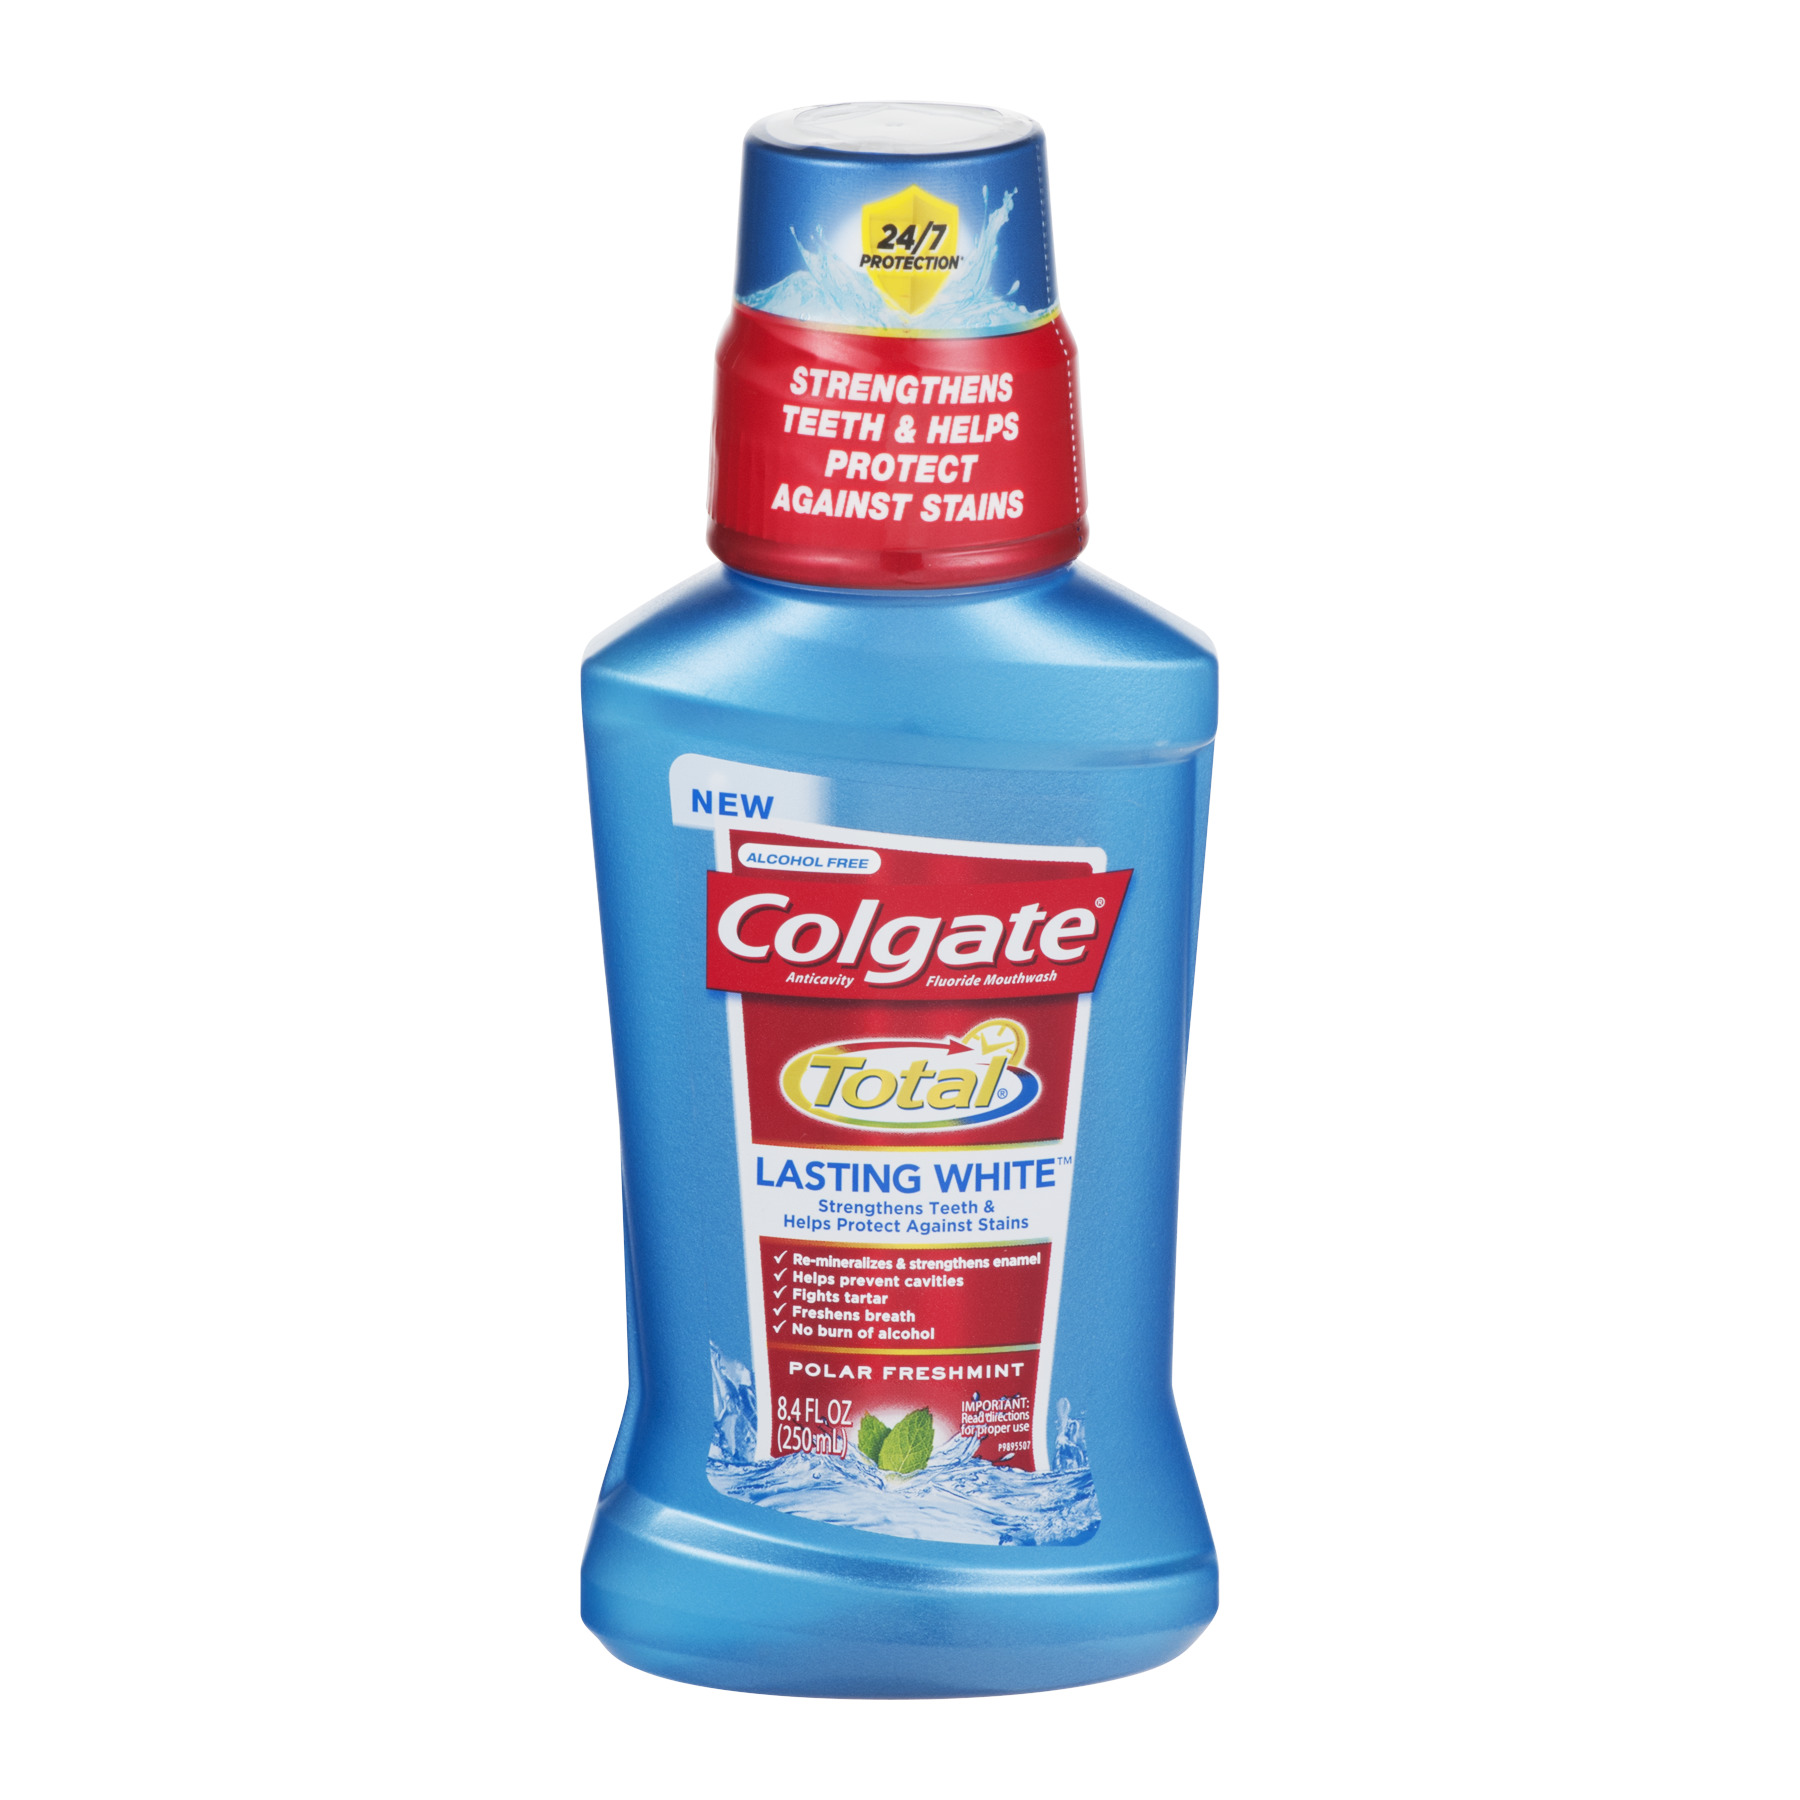 Colgate Total Lasting White Polar Mint Mouthwash - 8.4 fl oz